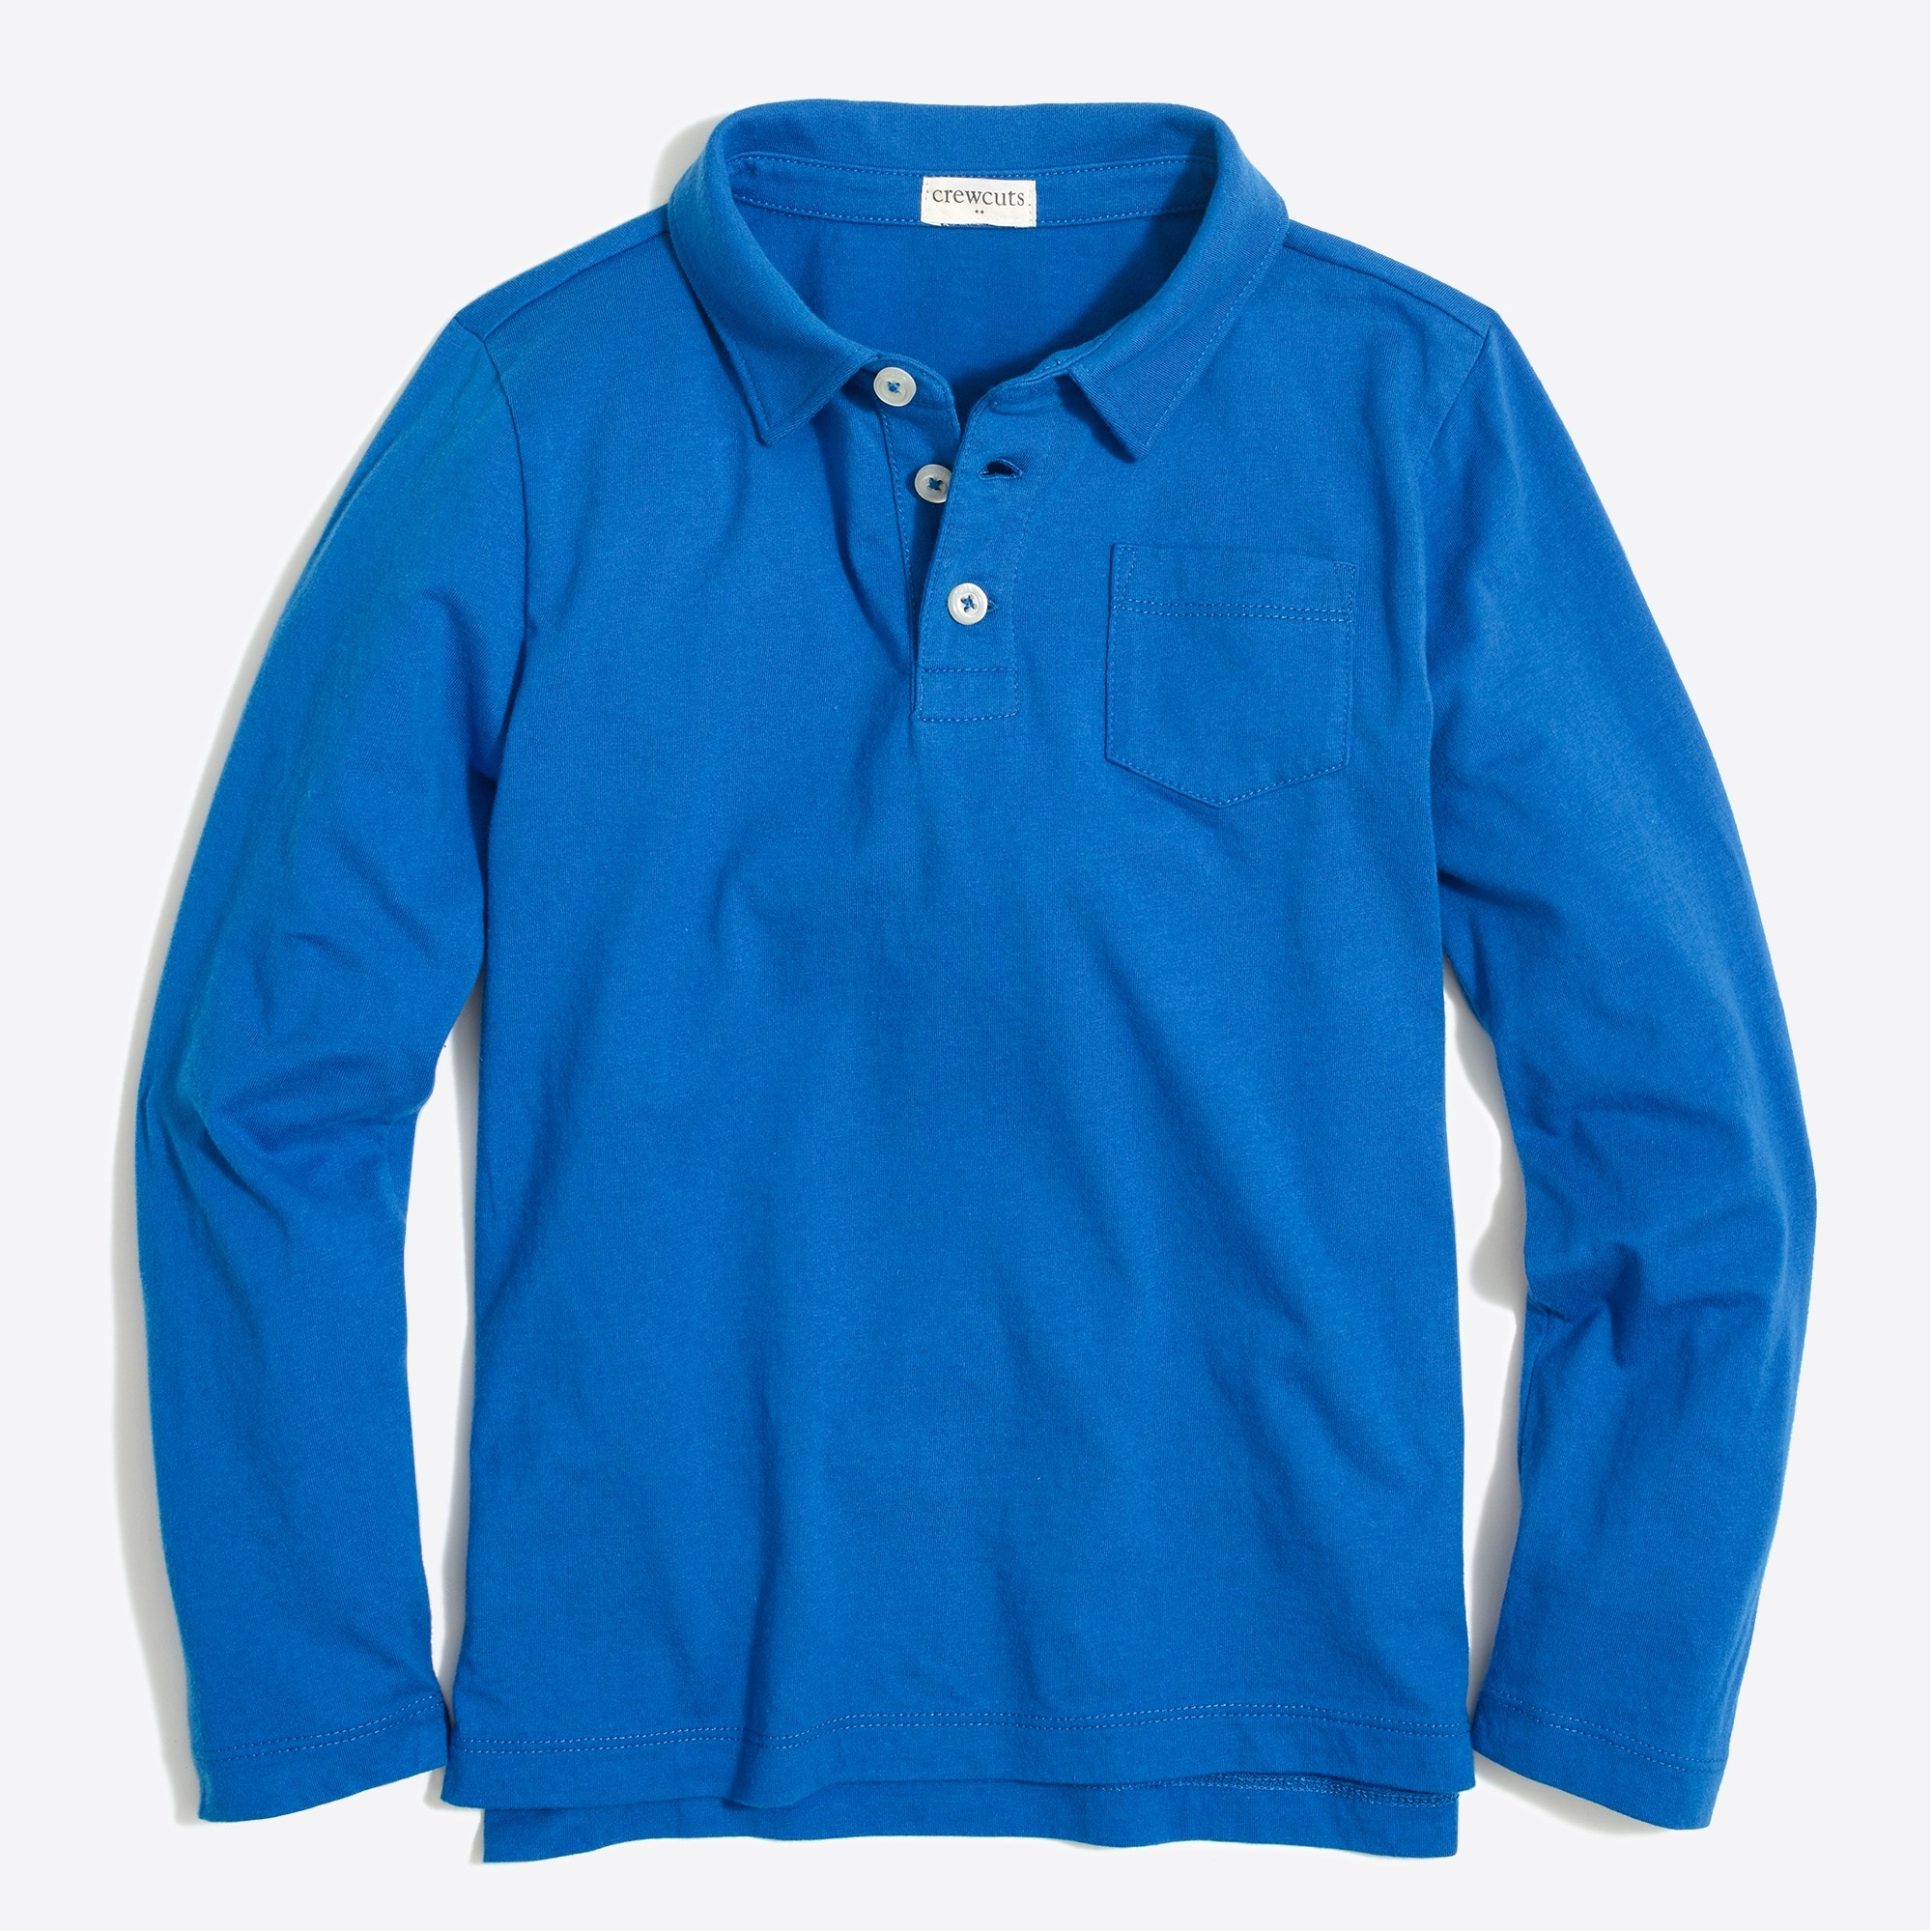 factory boys Boys' long-sleeve polo shirt